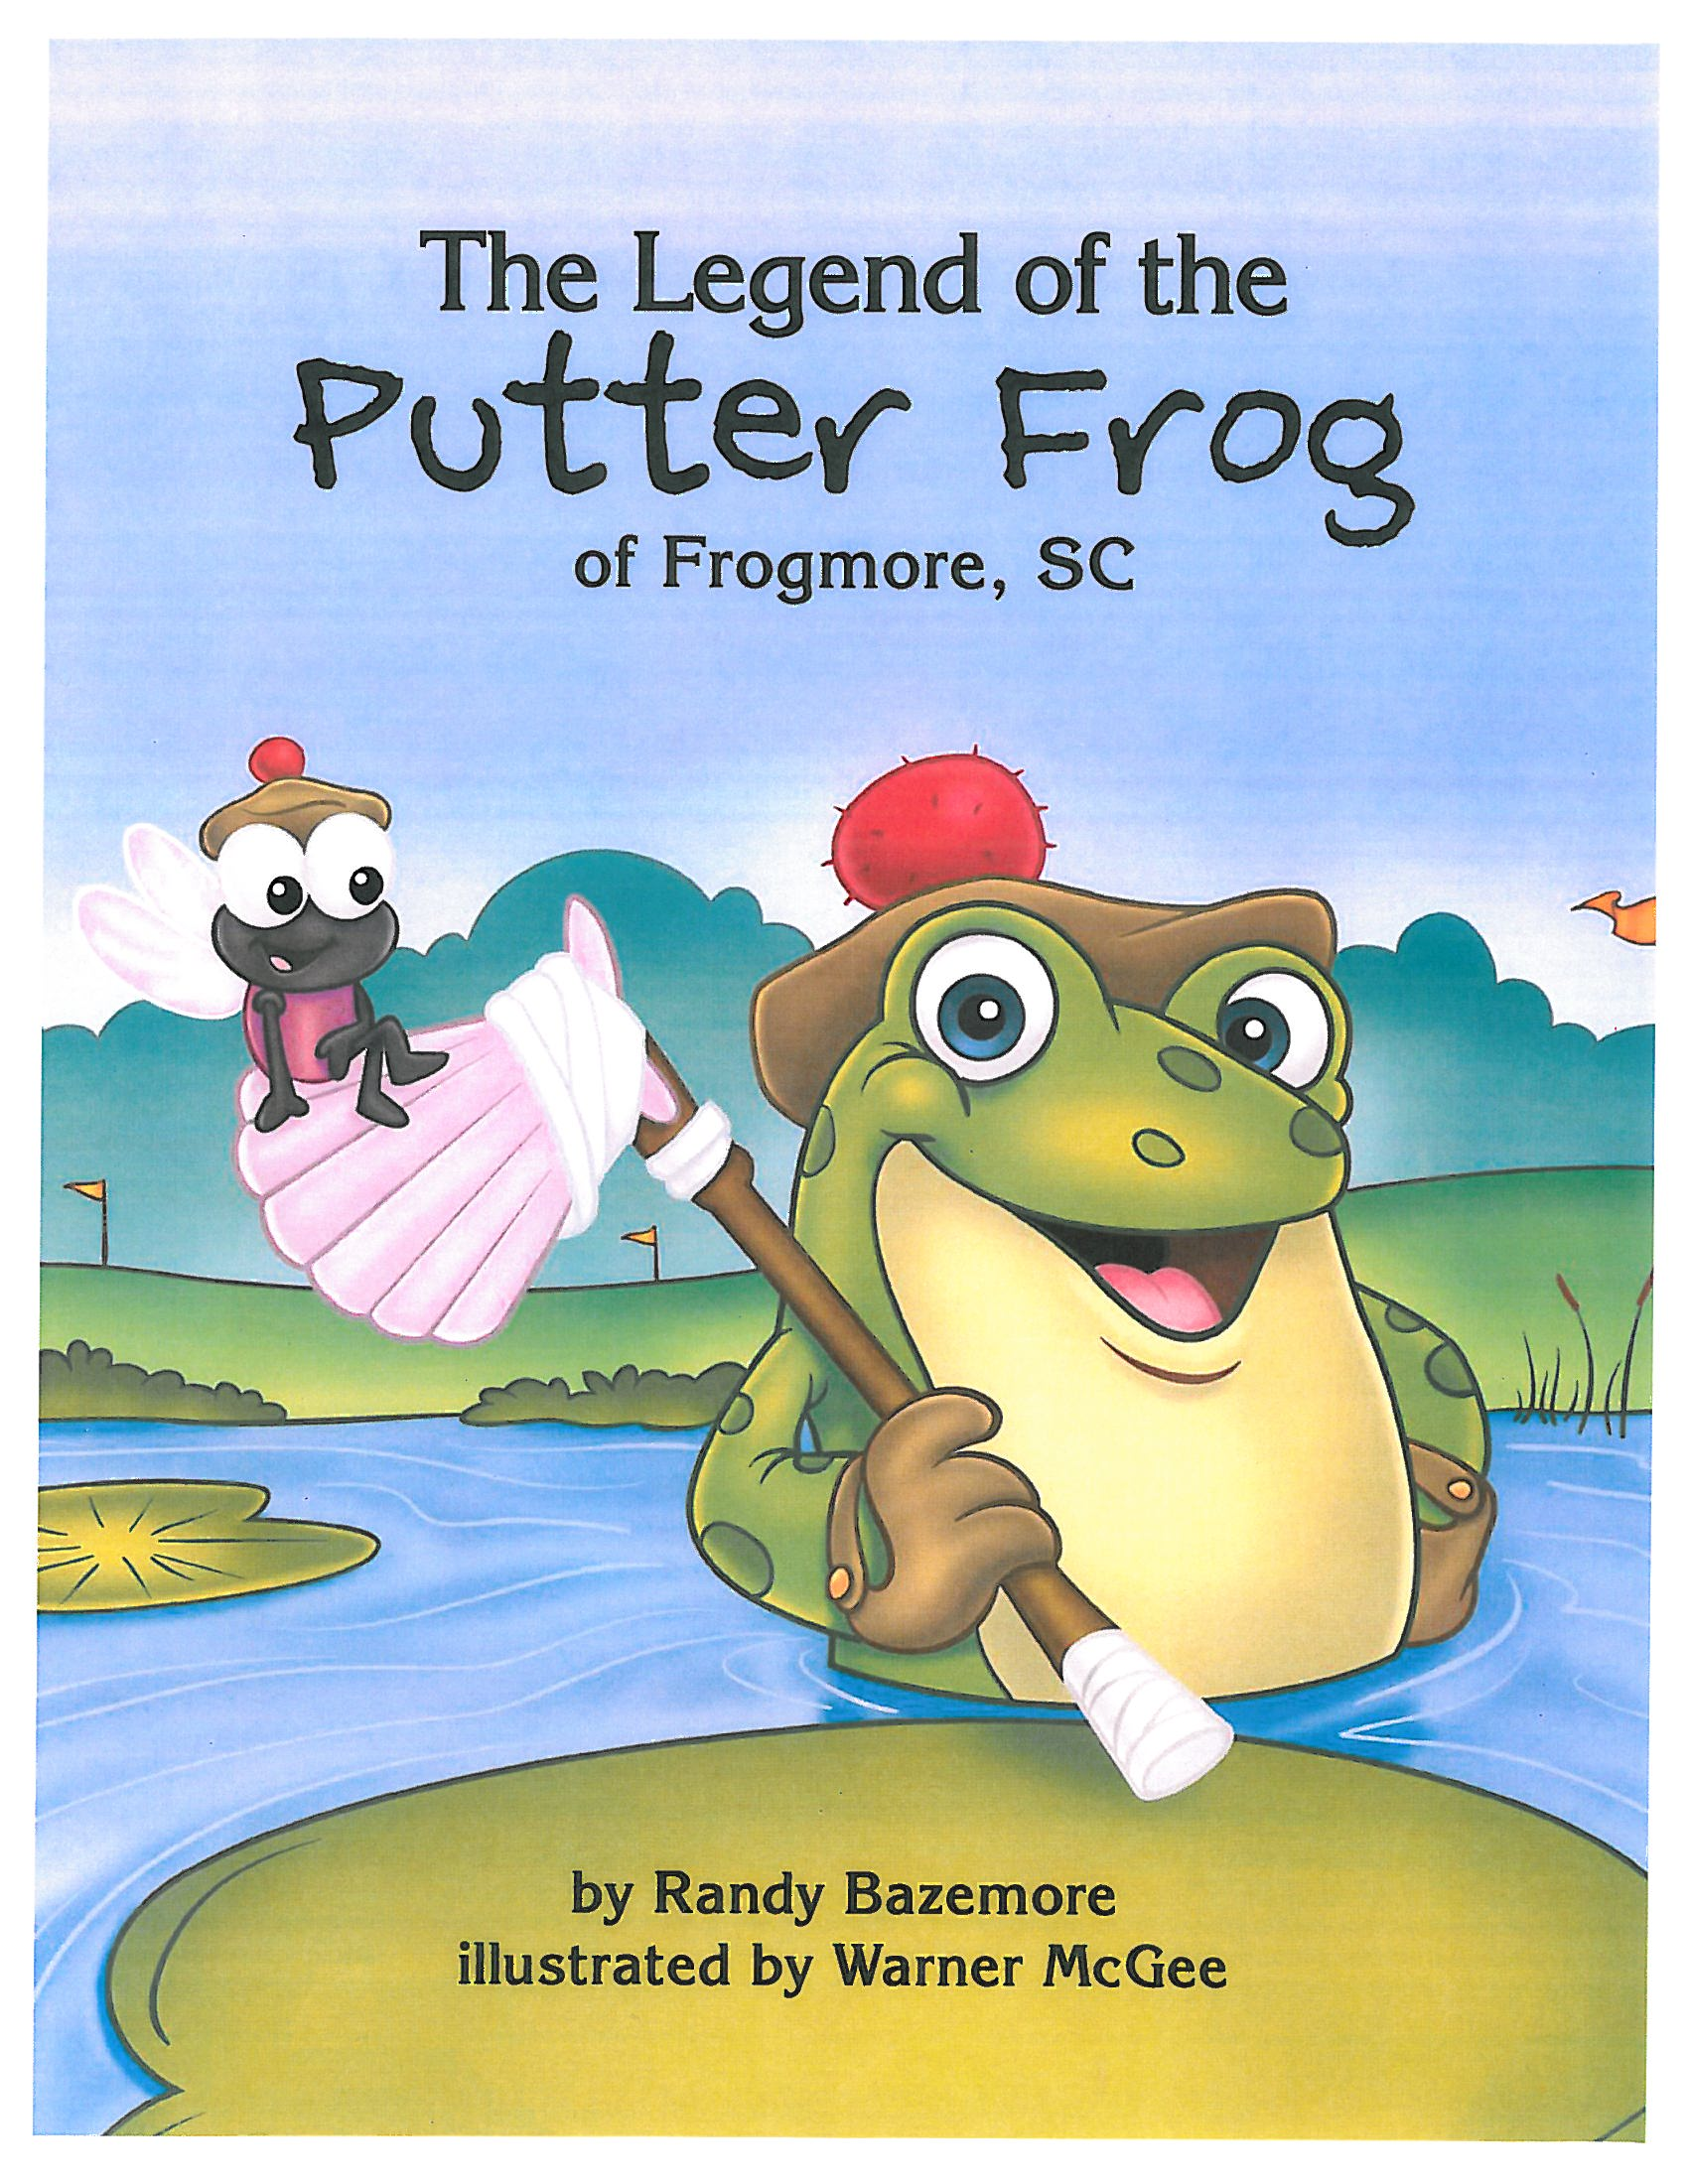 The Legend of the Putter Frog of Frogmore, SC